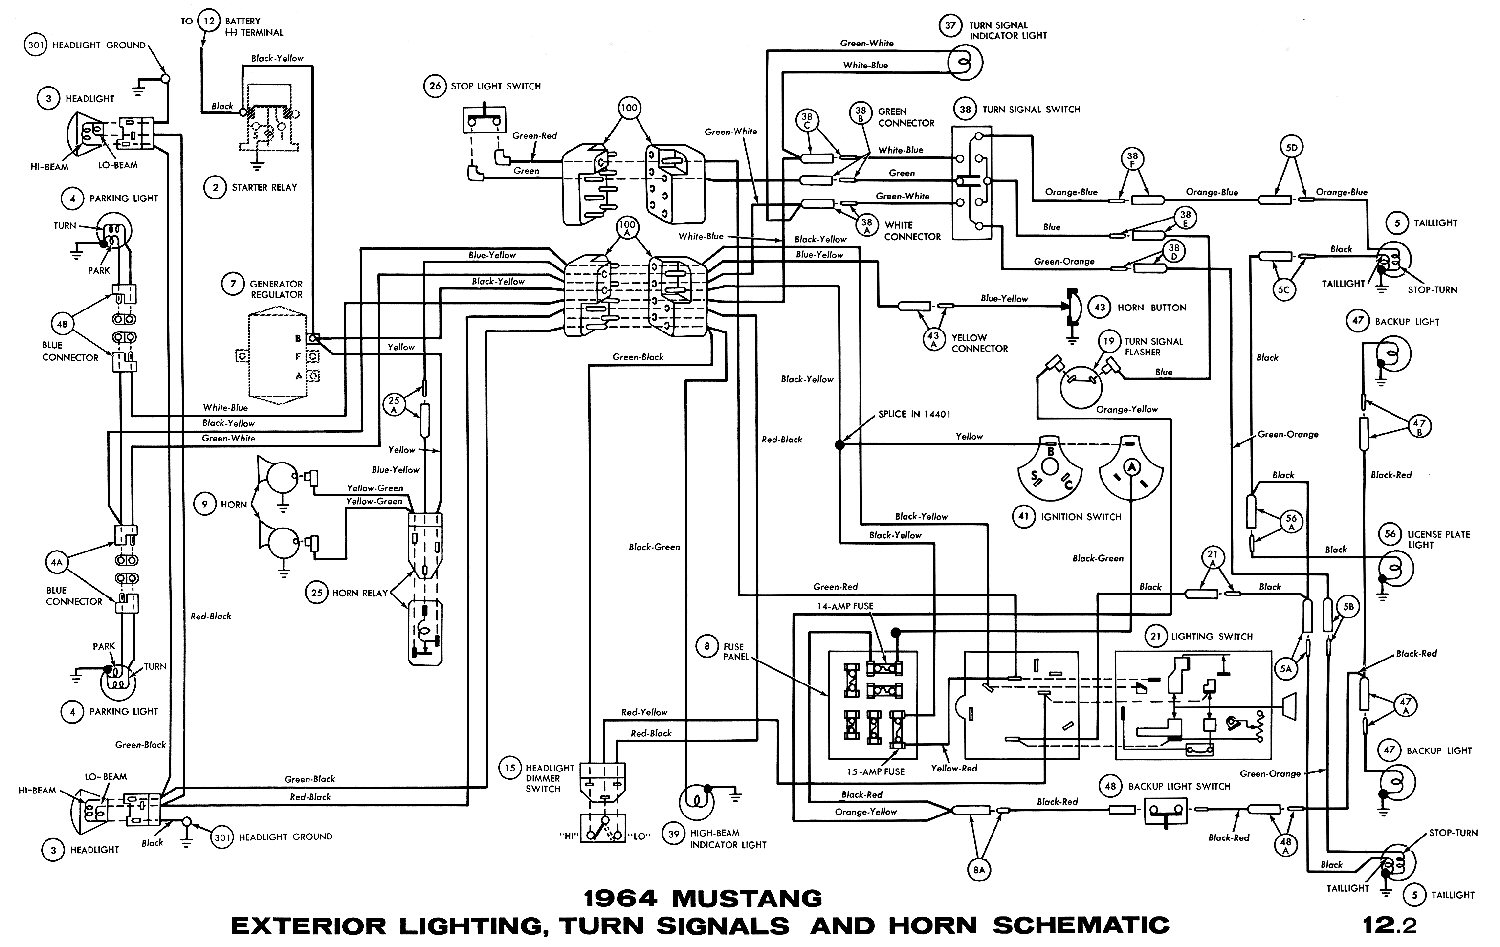 1964i 1964 mustang wiring diagrams average joe restoration 93 mustang turn signal wiring diagram at cos-gaming.co